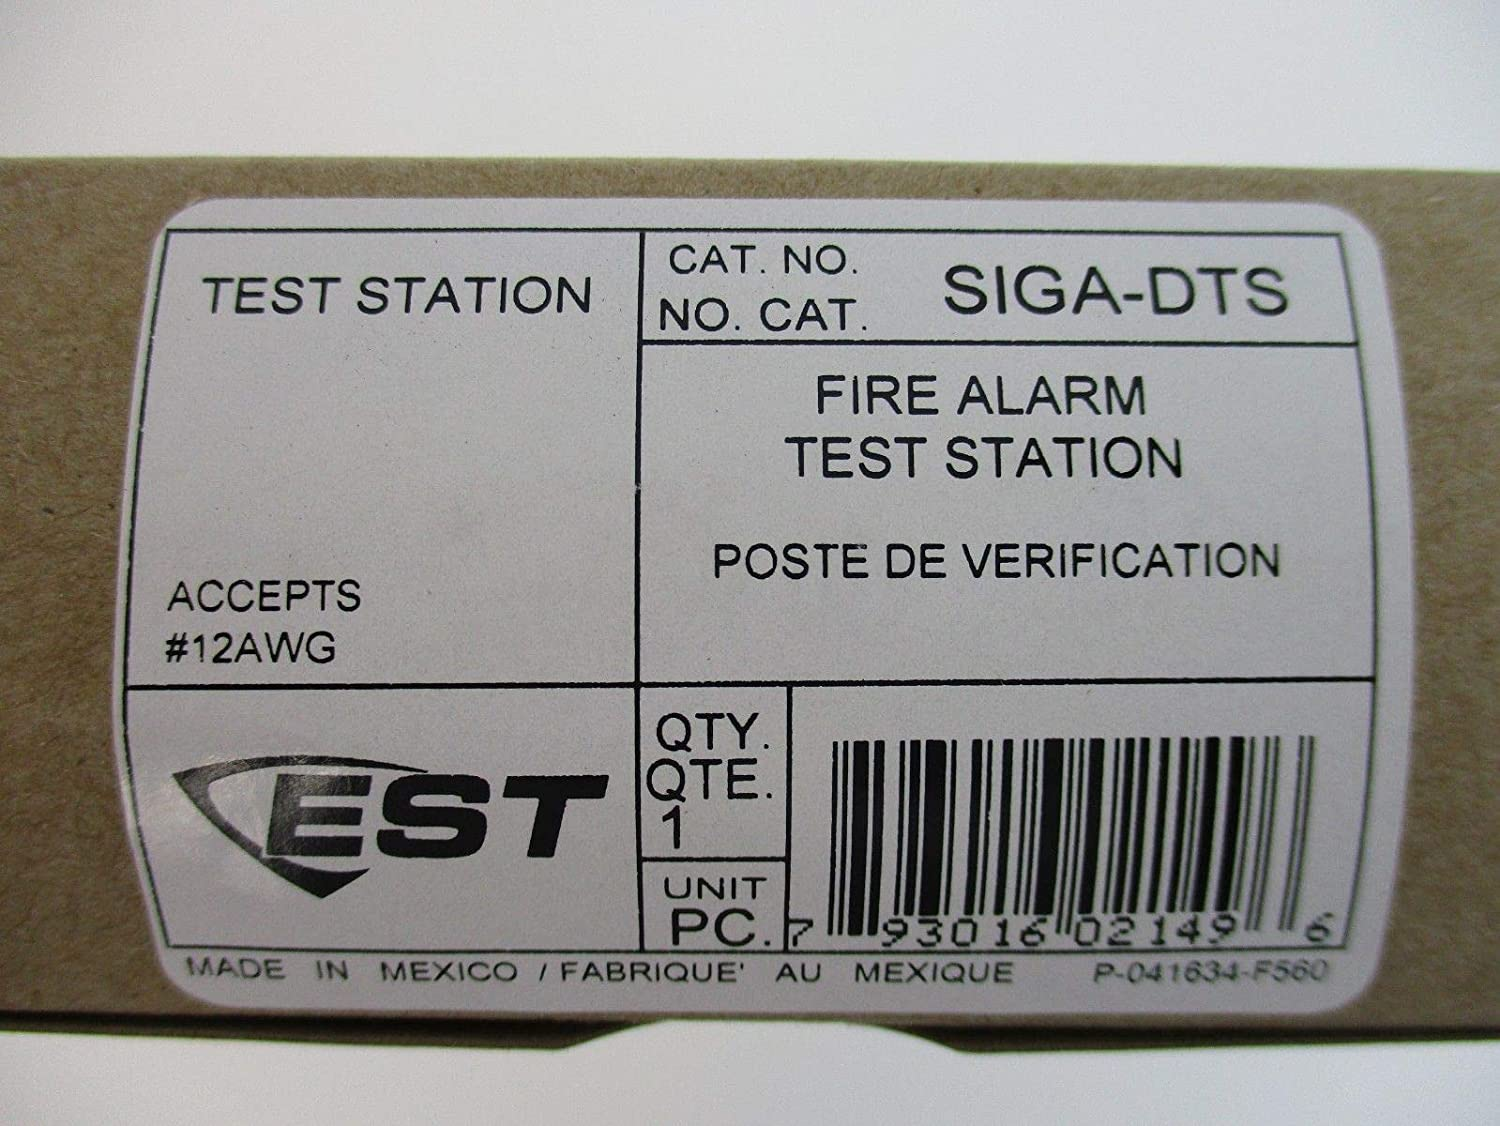 Amazon.com: Edwards SIGA-DTS - Duct Smoke Detector Test ...